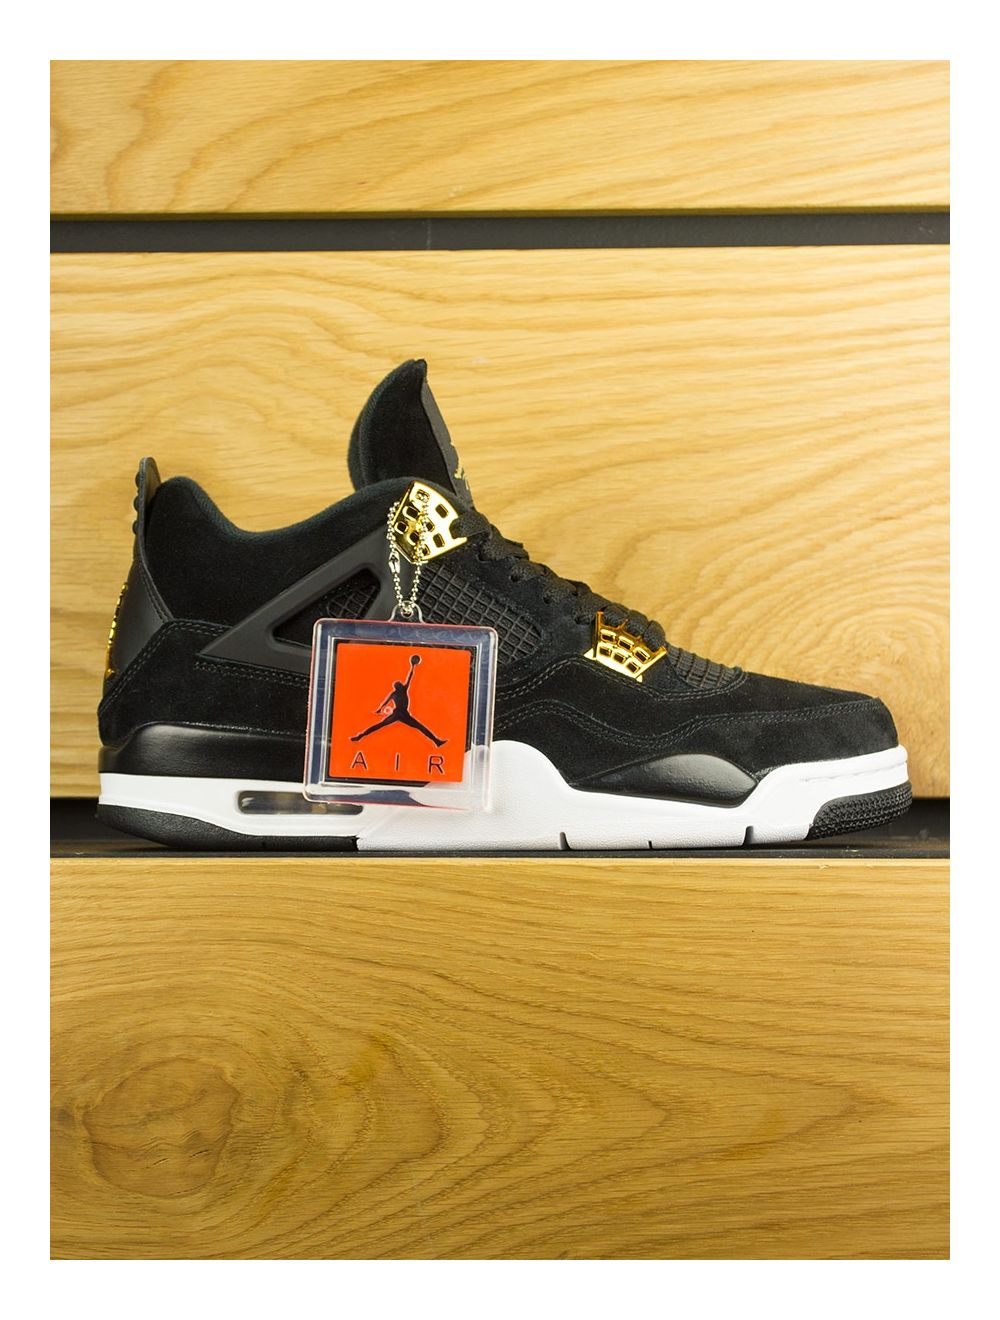 info for 217f9 06683 Nike Air Jordan IV Retro